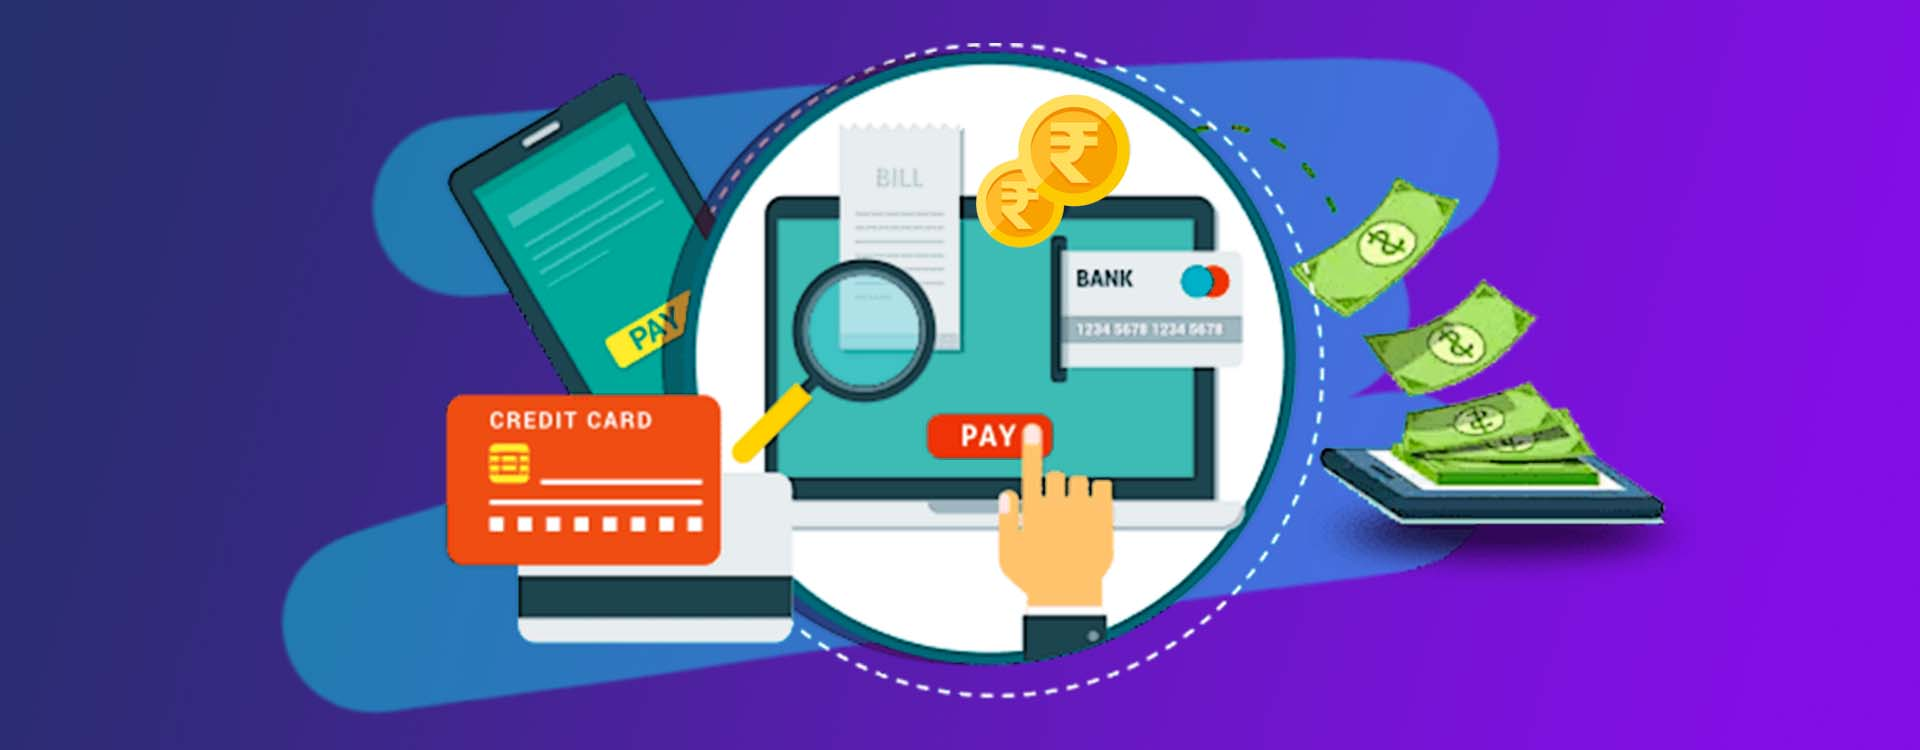 Top 5 Payment gateways to be adopted by businesses.